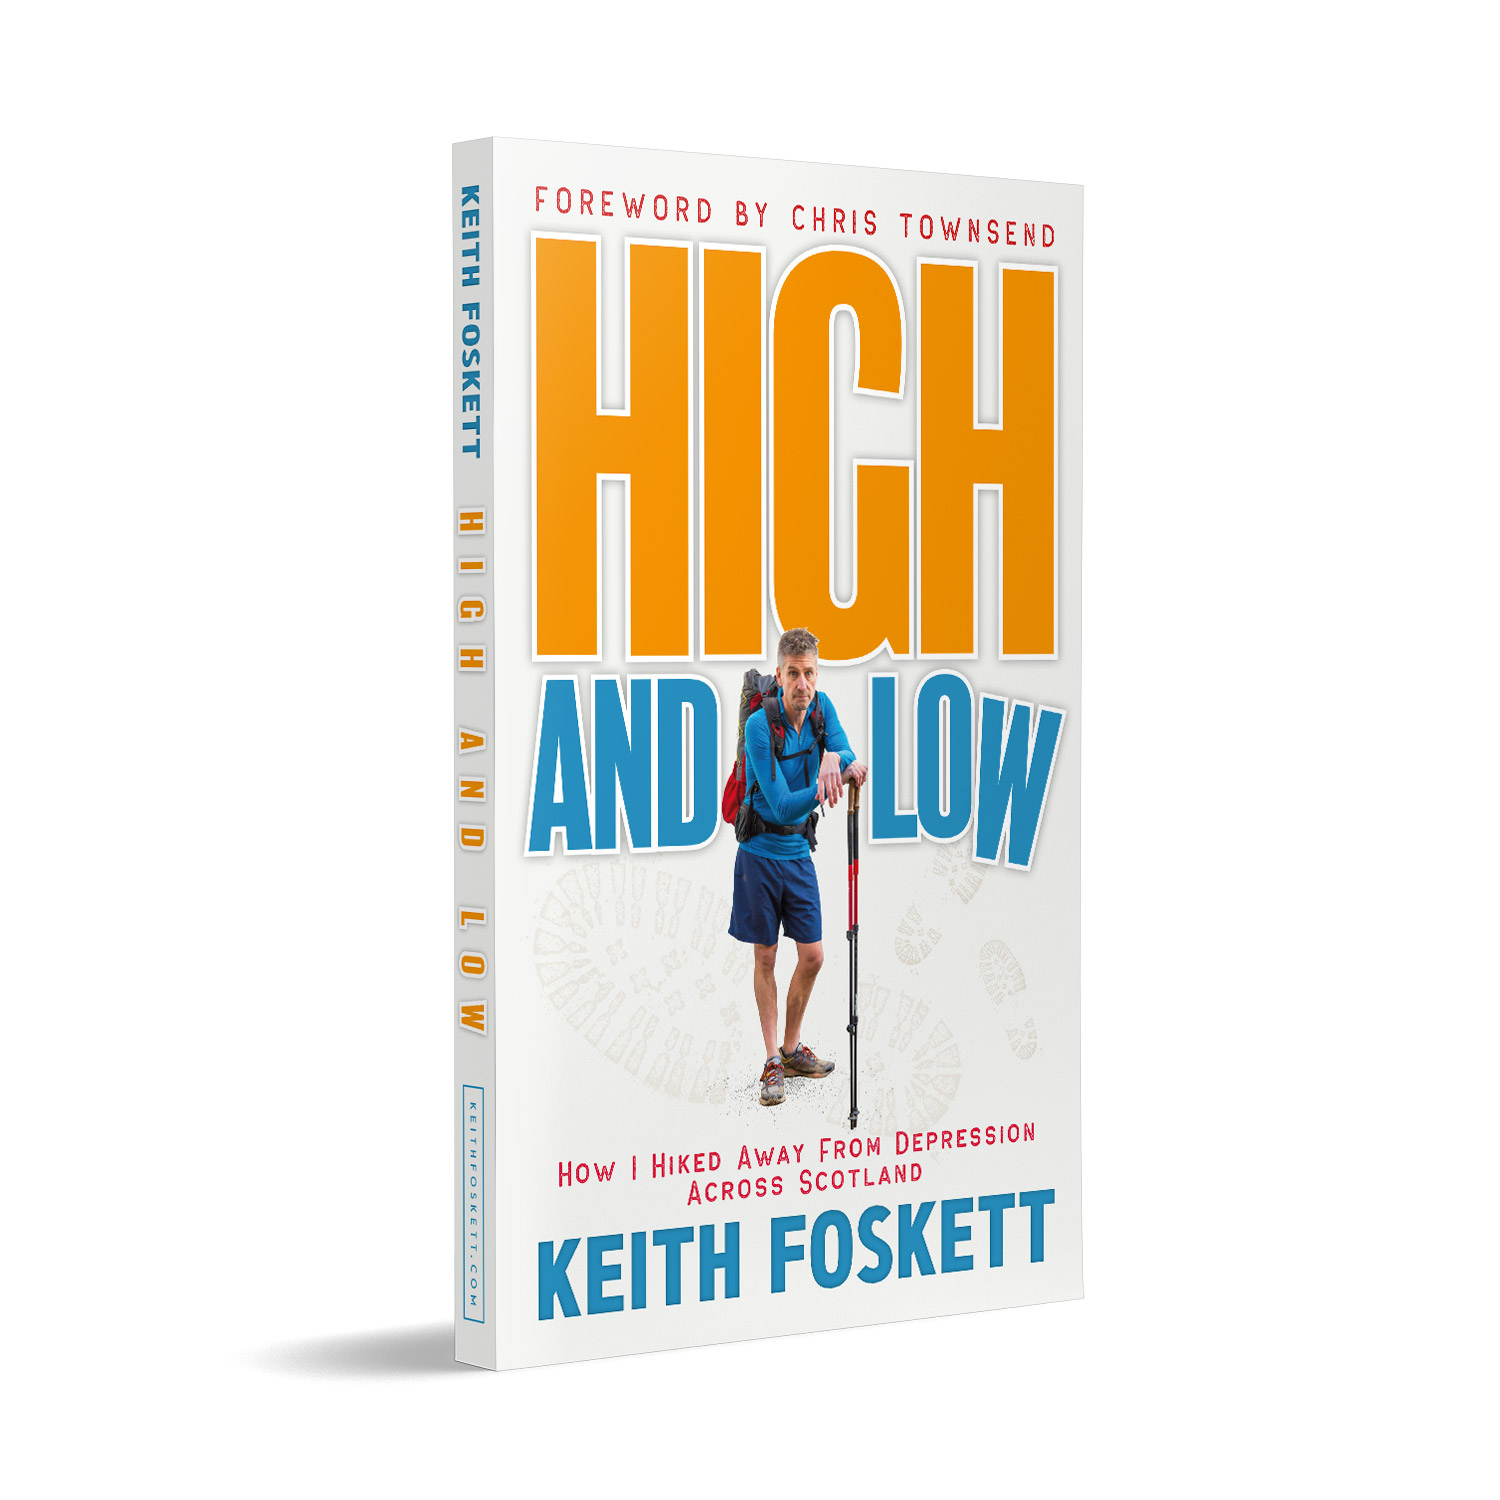 'High and Low' is a humorous and touching walking memoir, by Keith Foskett. The book cover was designed by Mark Thomas, of coverness.com. To find out more about my book design services, please visit www.coverness.com.